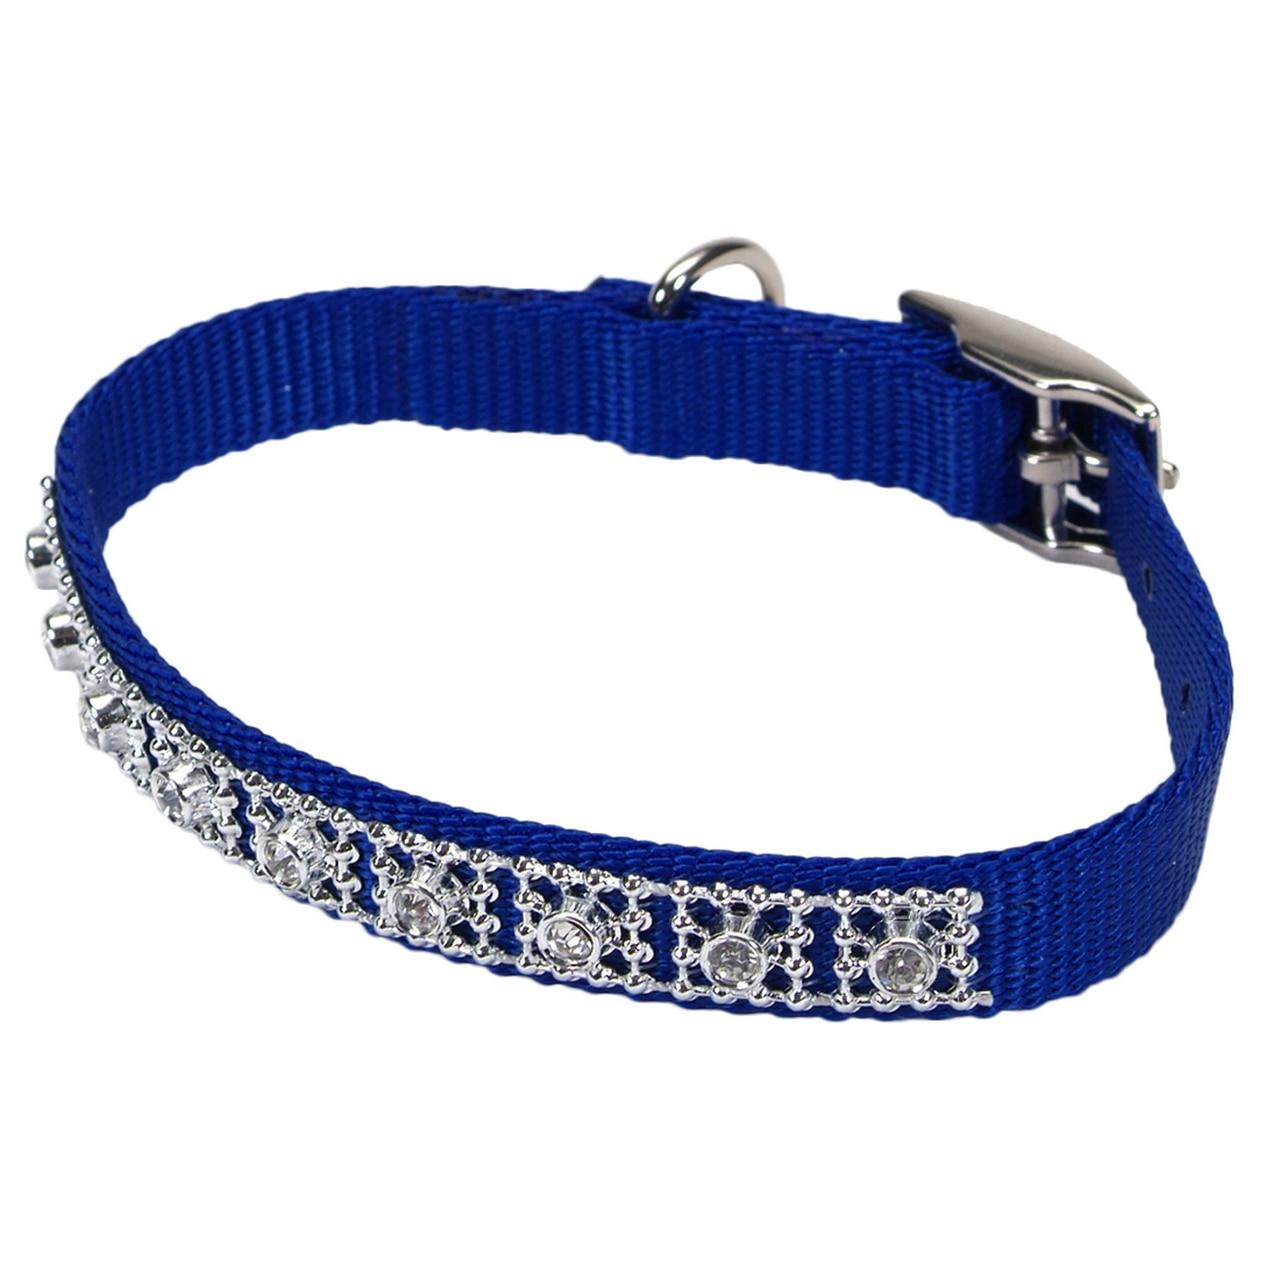 Coastal Jeweled Dog Collar, Blue Image